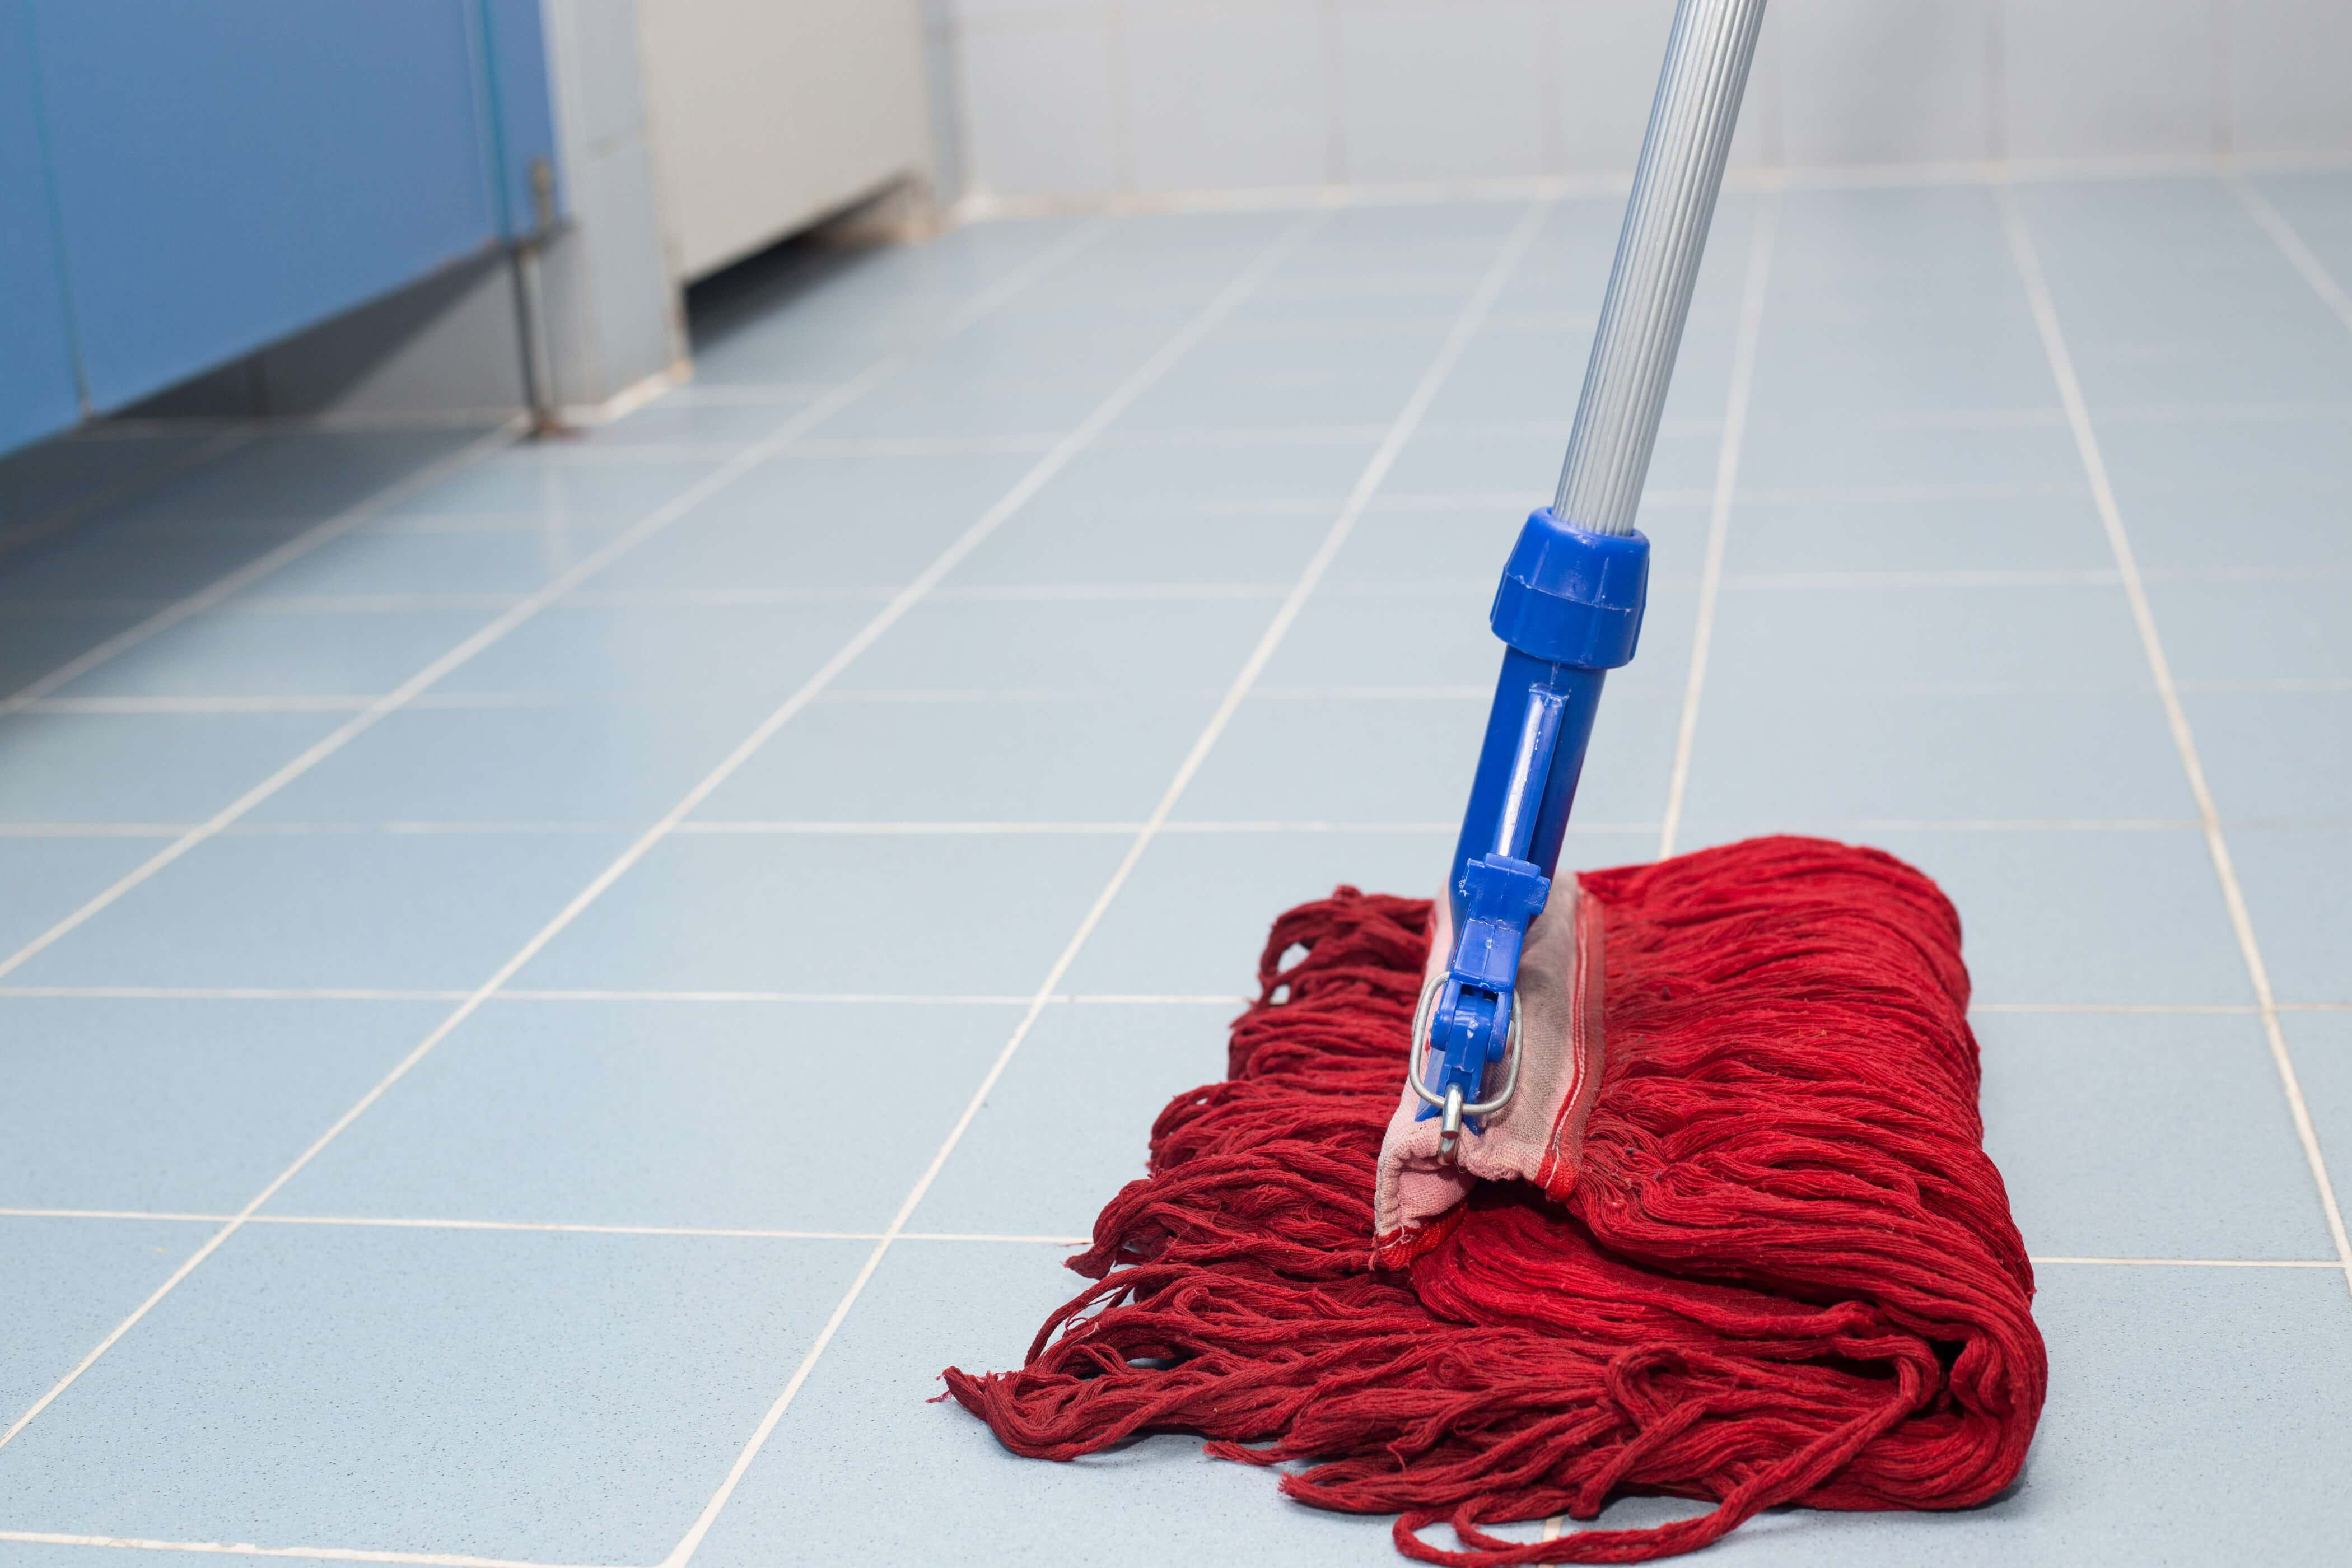 A mop wipes the floor of a rest room, which caused an accident at work